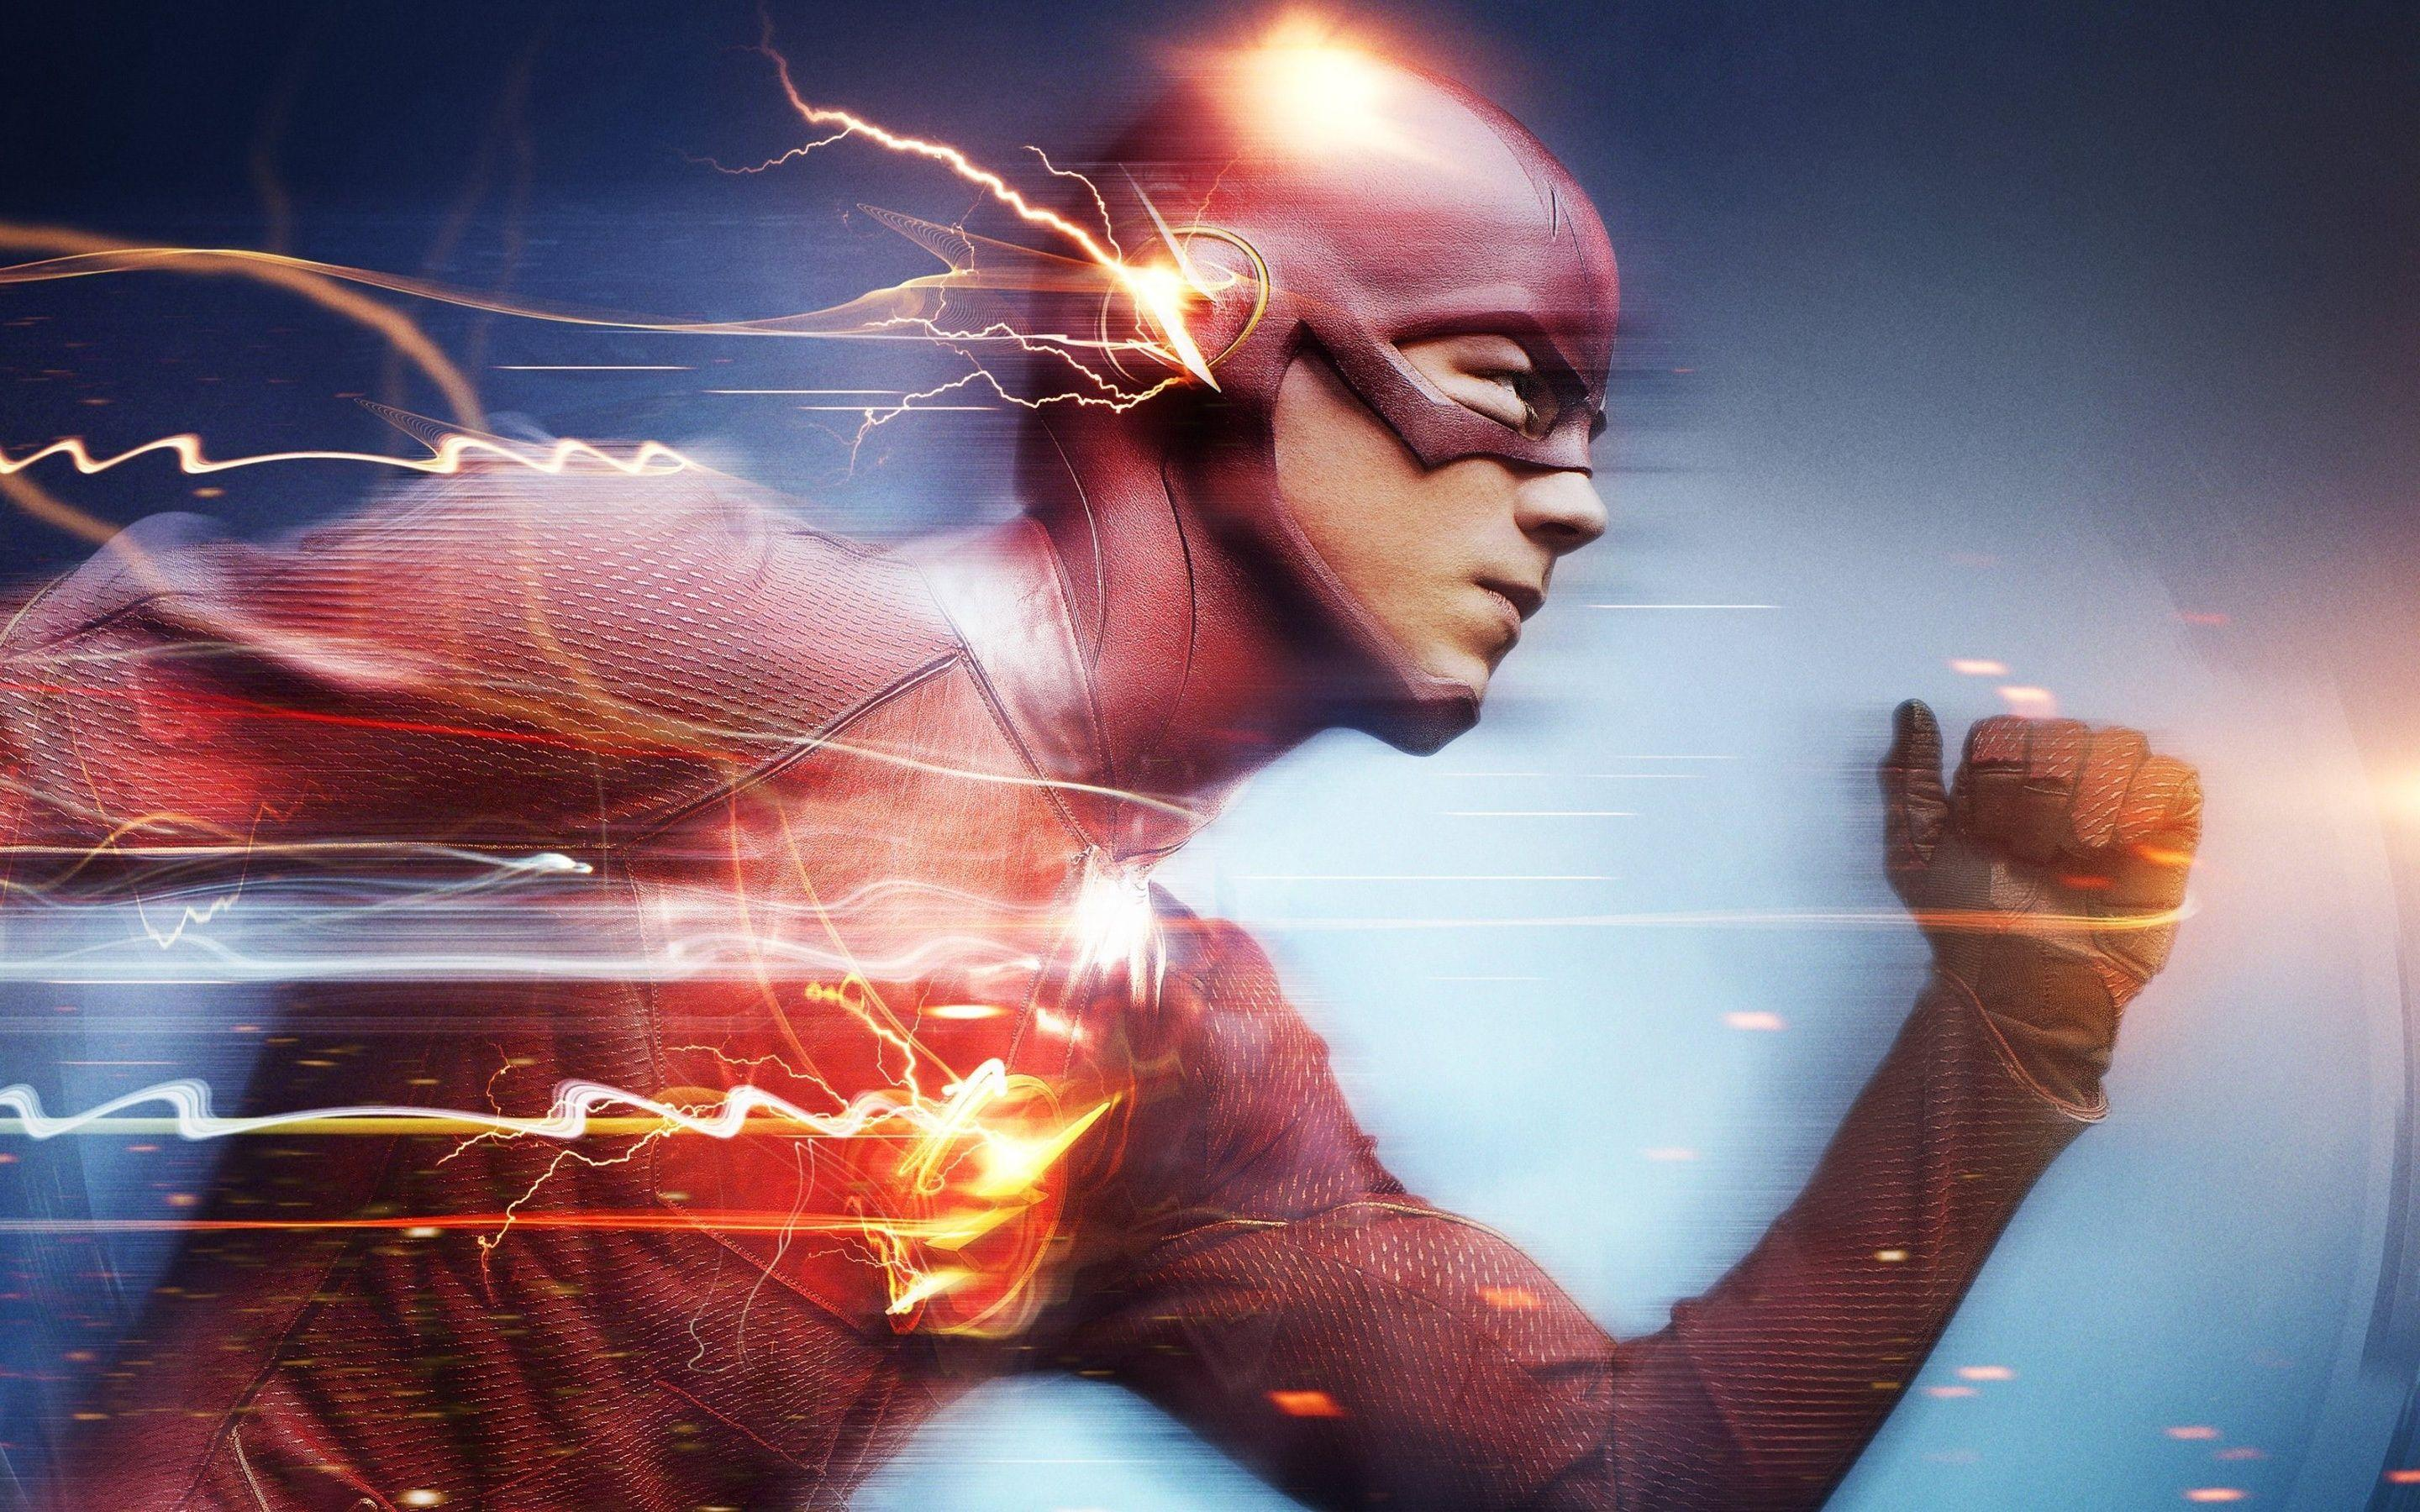 35 The Flash (2014) HD Wallpapers | Backgrounds - Wallpaper Abyss